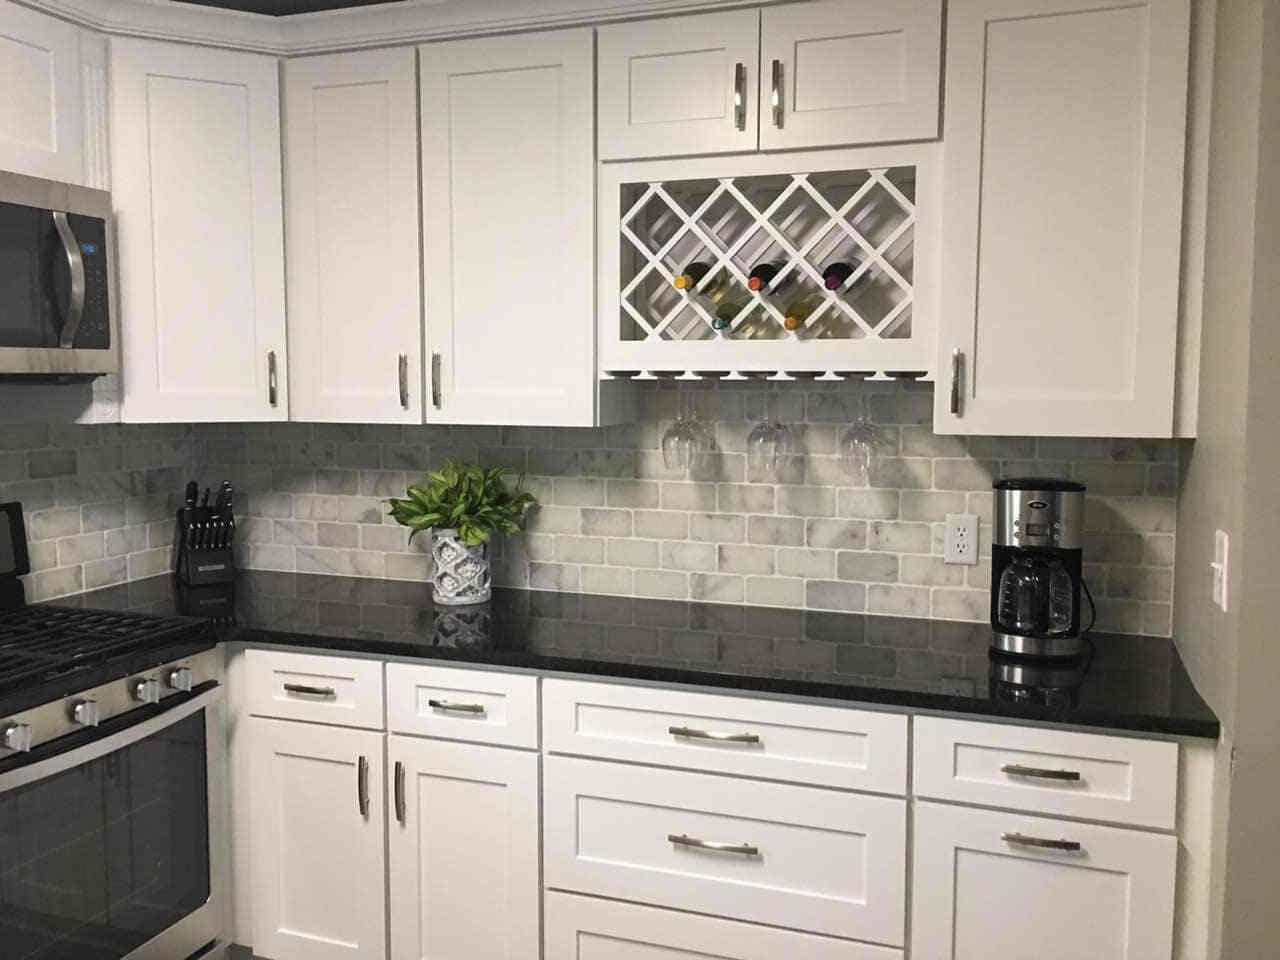 G Series Cabinets - Jacksonville, FL - DL Cabinetry ...